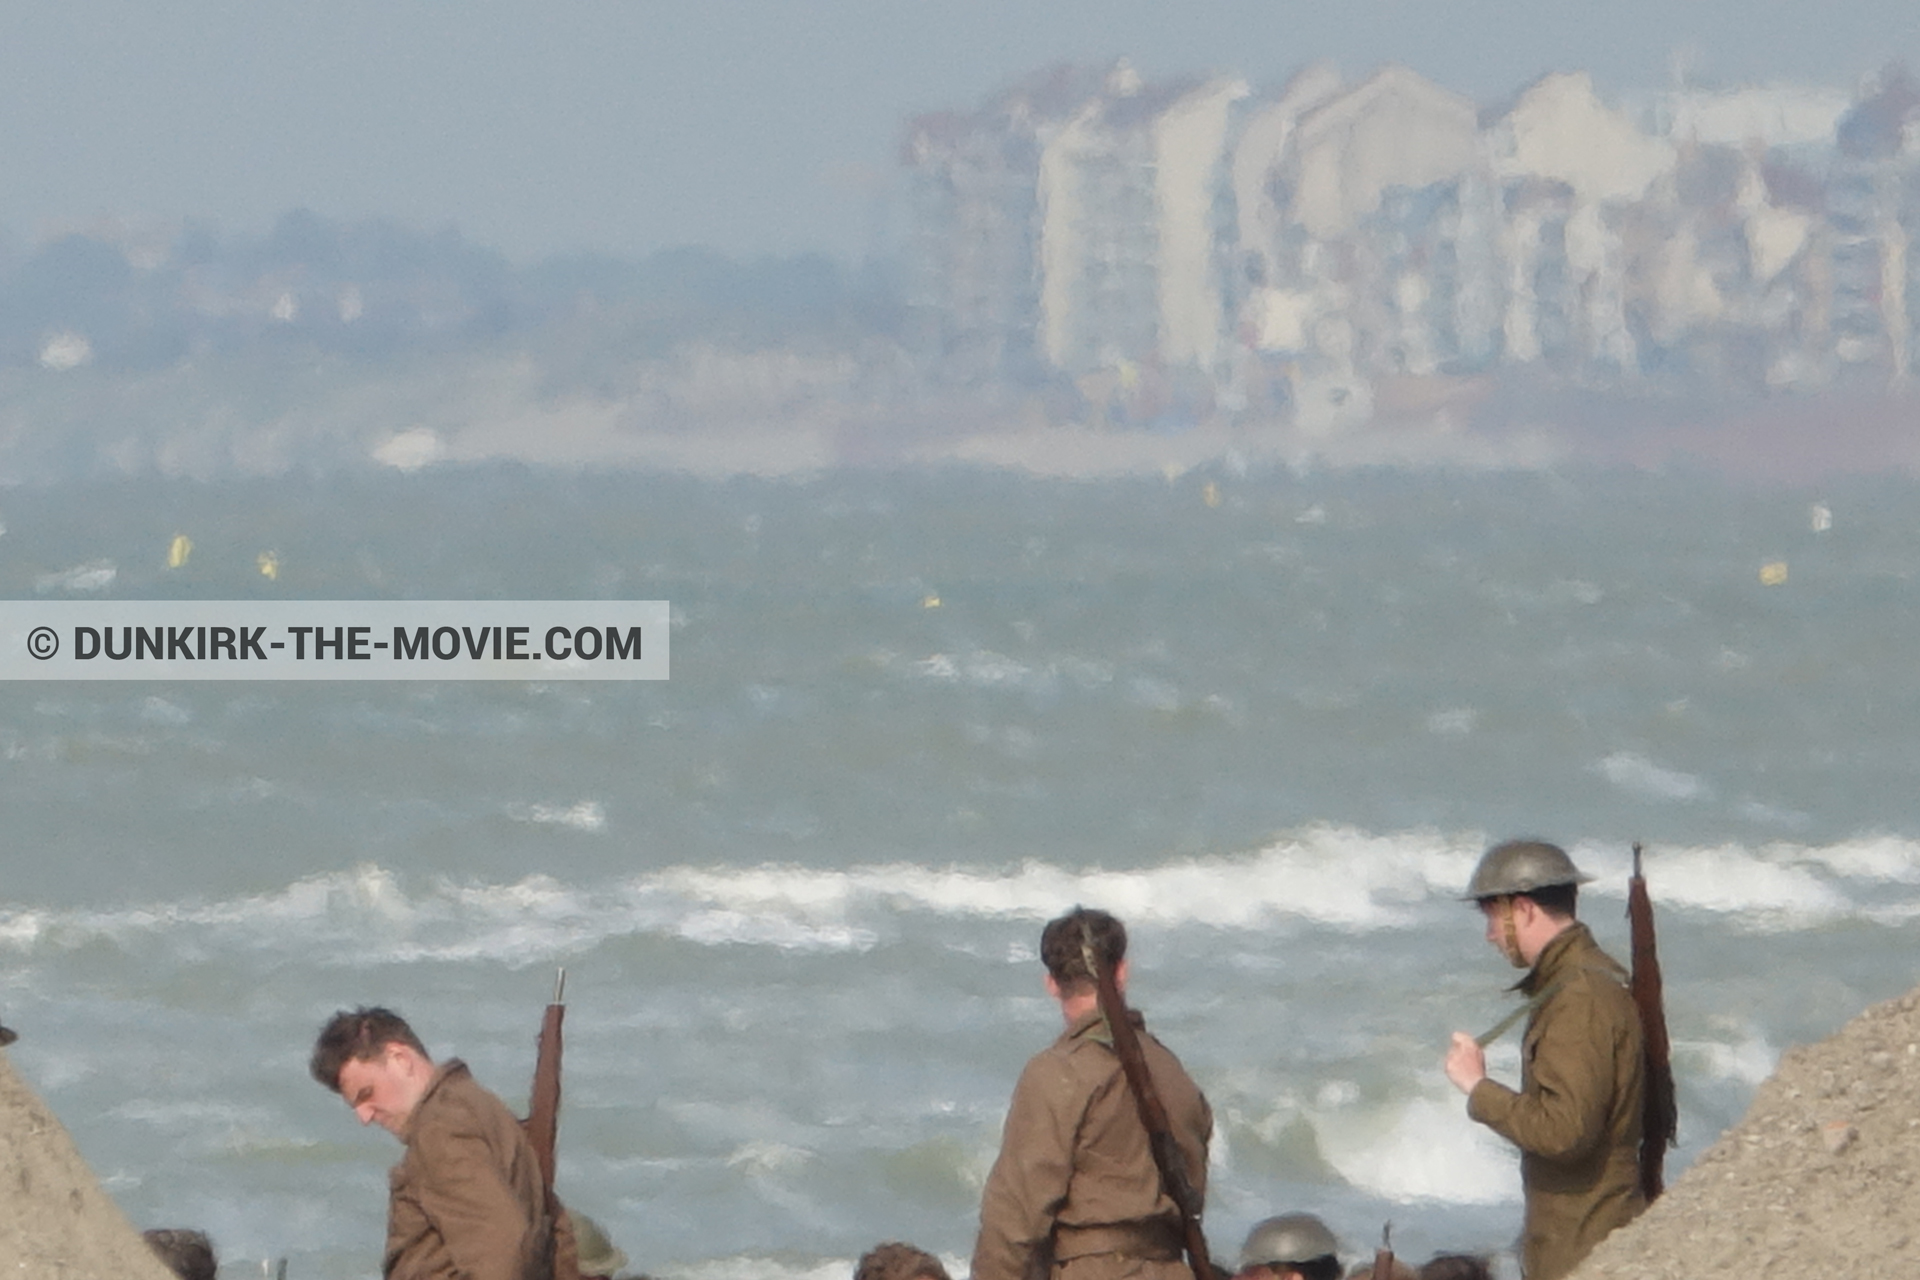 Picture with supernumeraries, rough sea, beach,  from behind the scene of the Dunkirk movie by Nolan